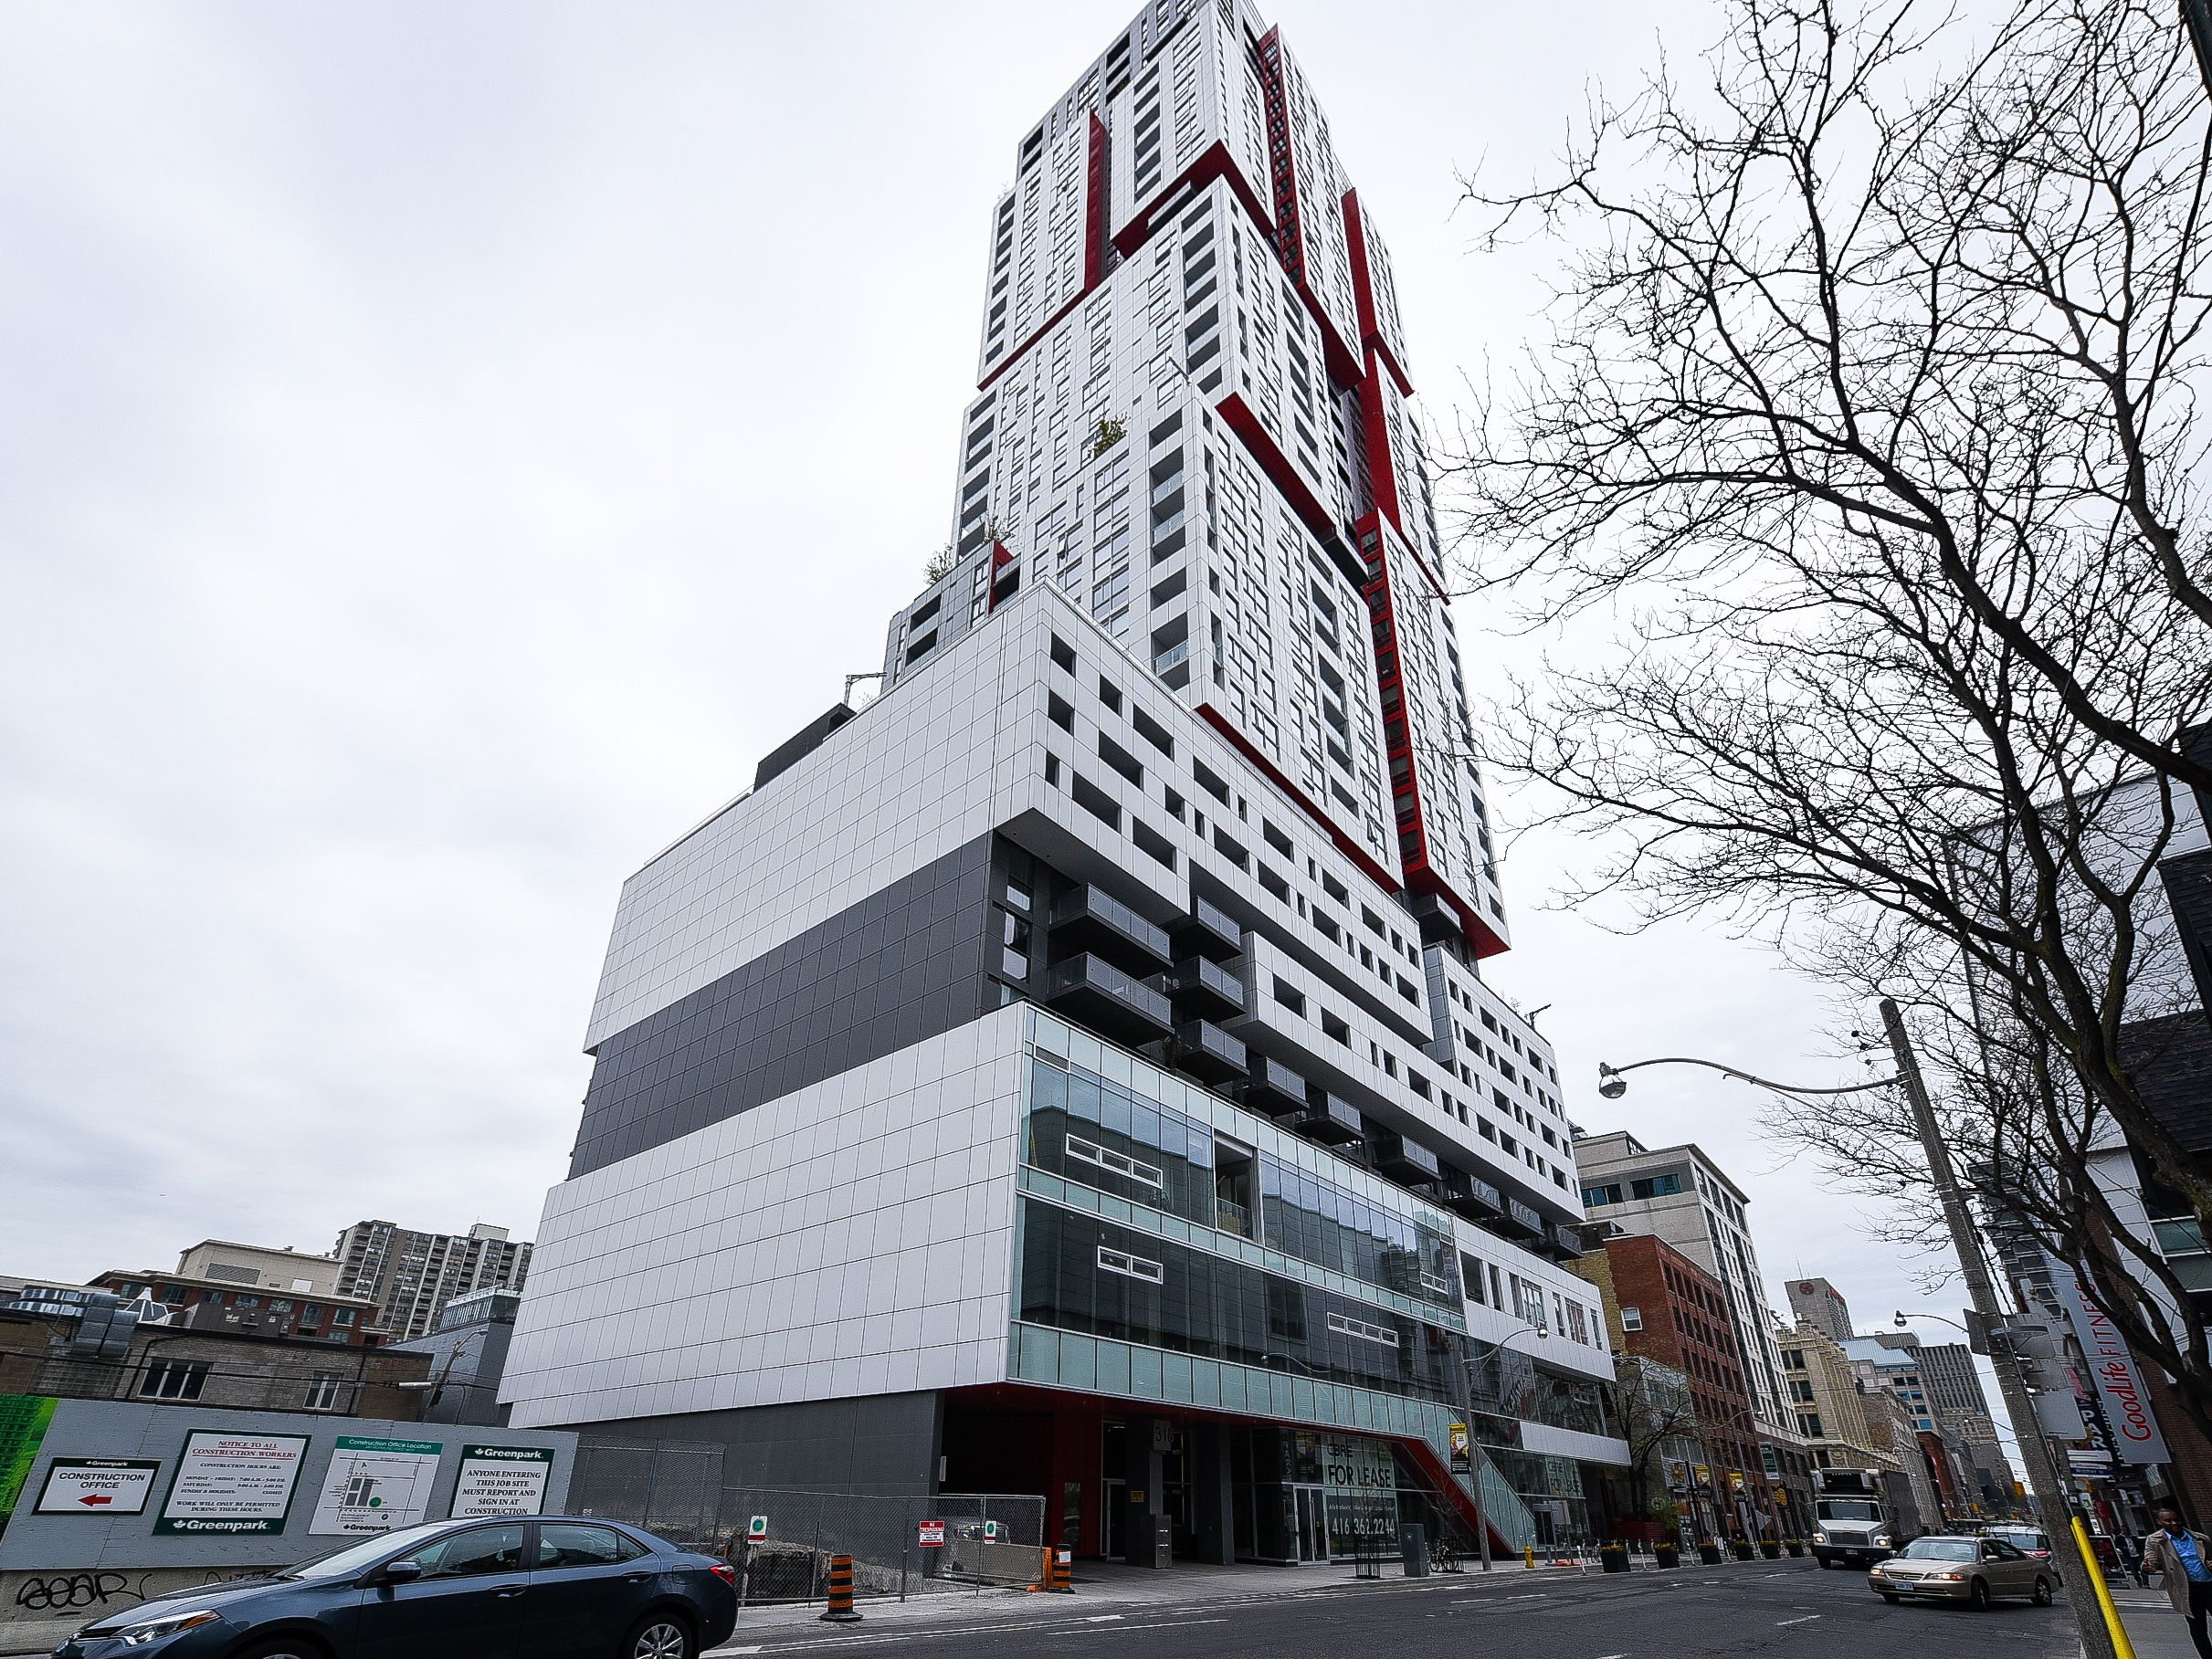 318 Richmond St W Suite 3506 Listed By Matt Smith For Sale Featuring 6 Rooms 1 1 Bedrooms And 1 Bathroom Welcome To Cube Design Toronto Skyline Building